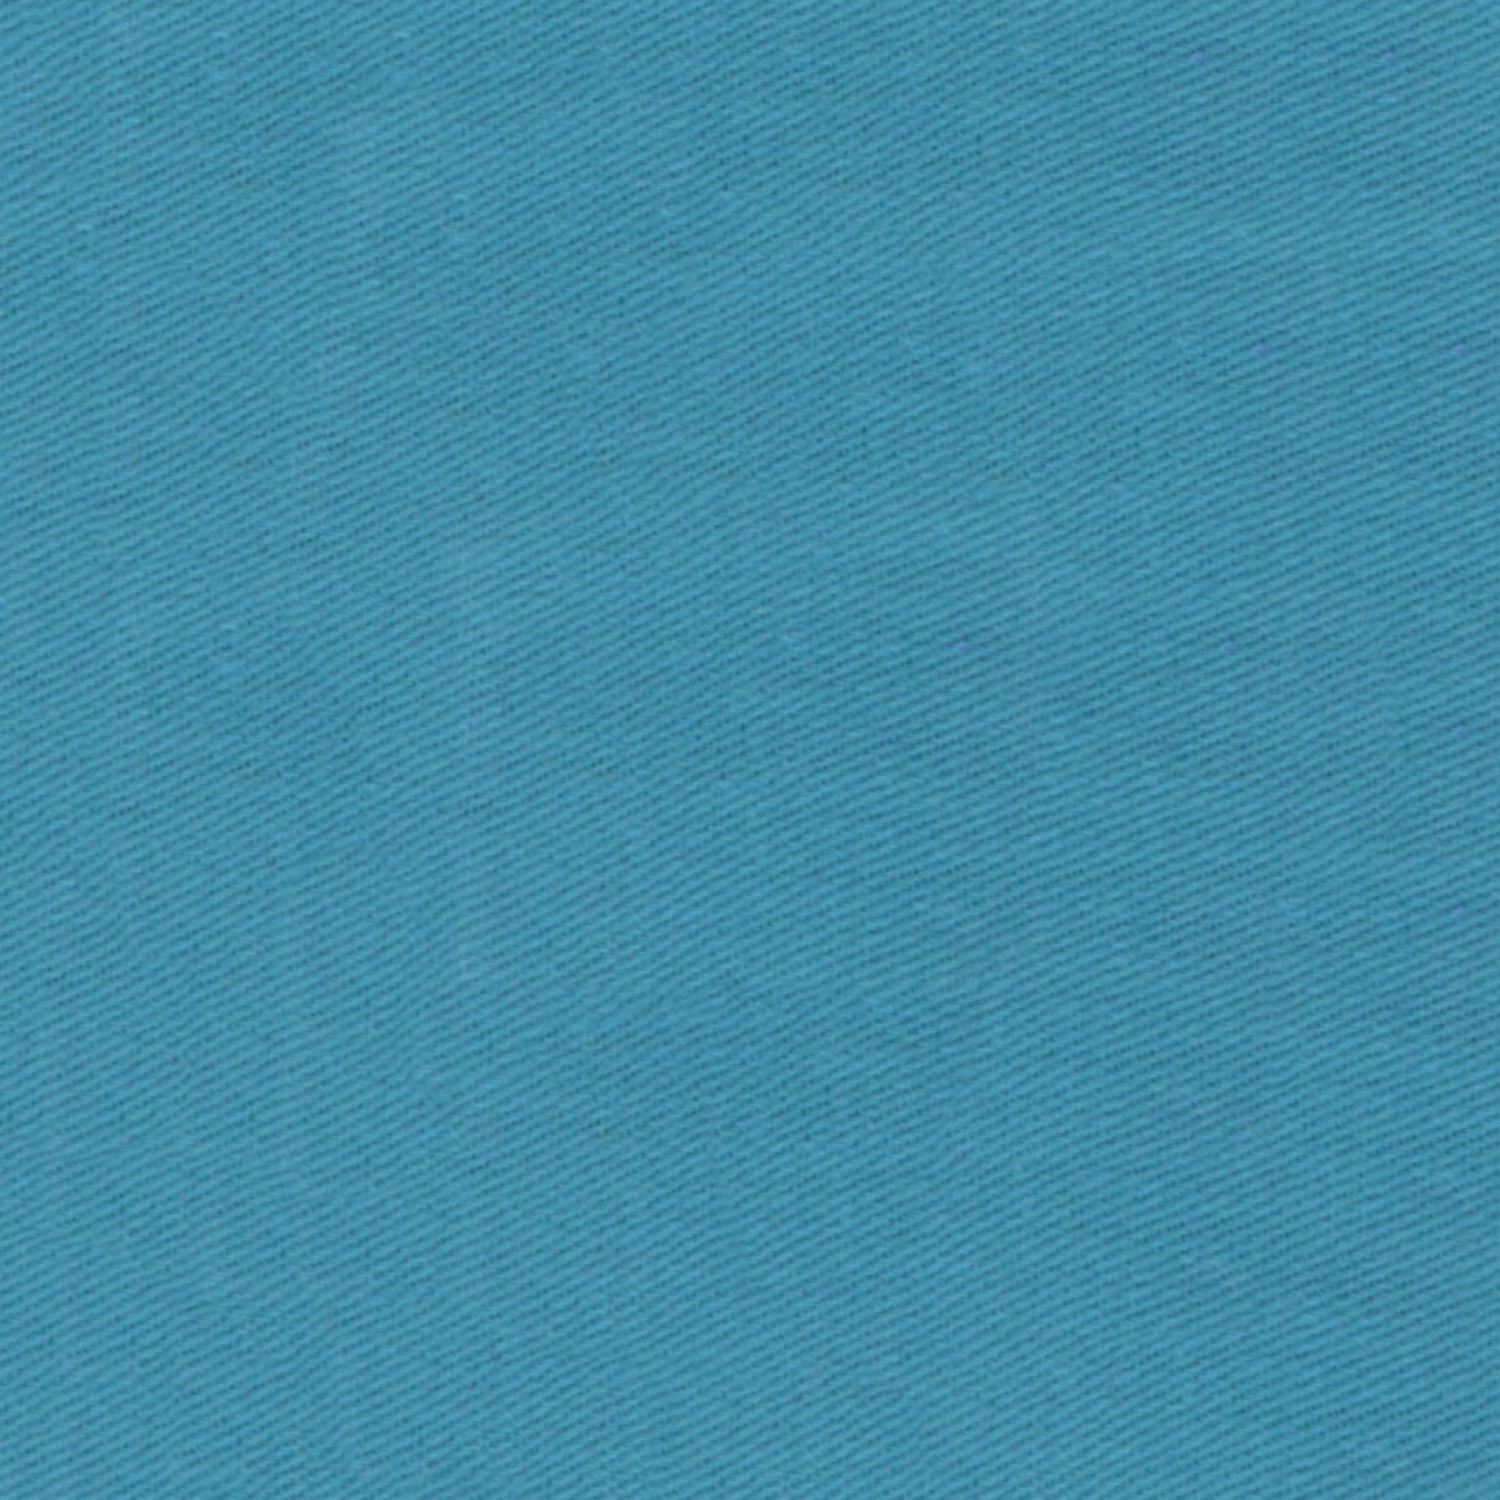 "Milestone Twill Jade Island Fabric 7oz - 60"" Wide x Per Yard"